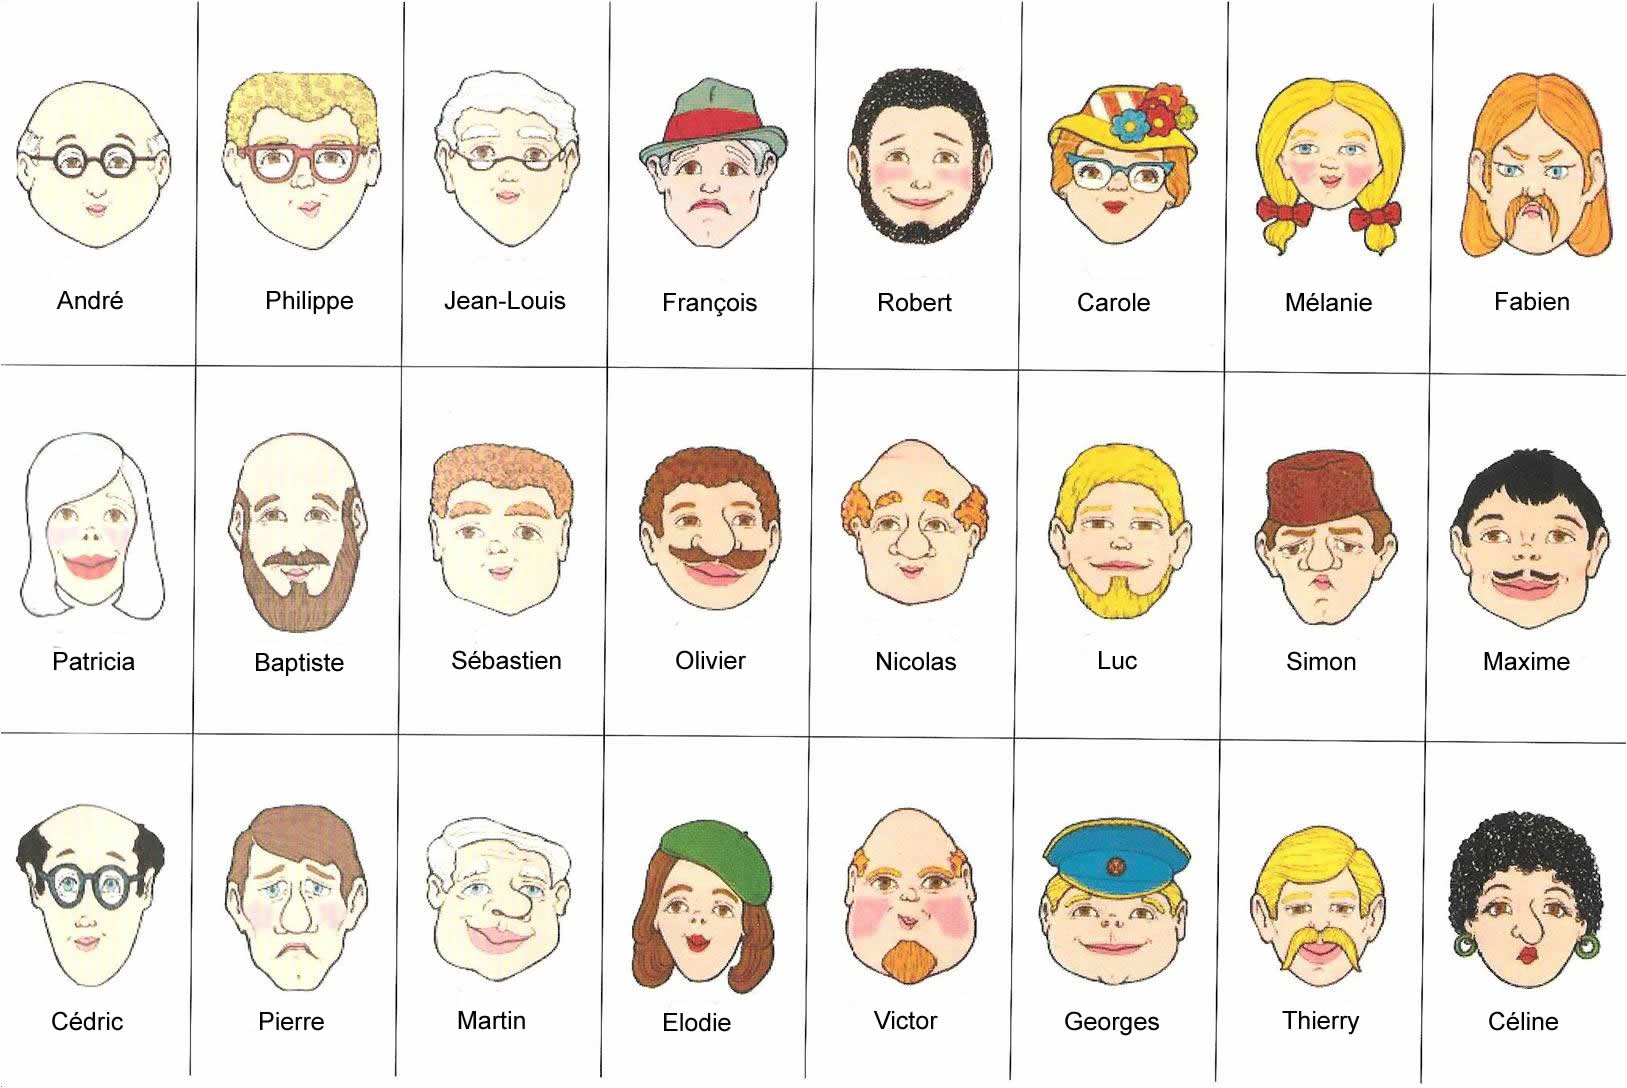 graphic regarding Guess Who Game Printable named Clroom Game titles for Introductory / Starting French Cles